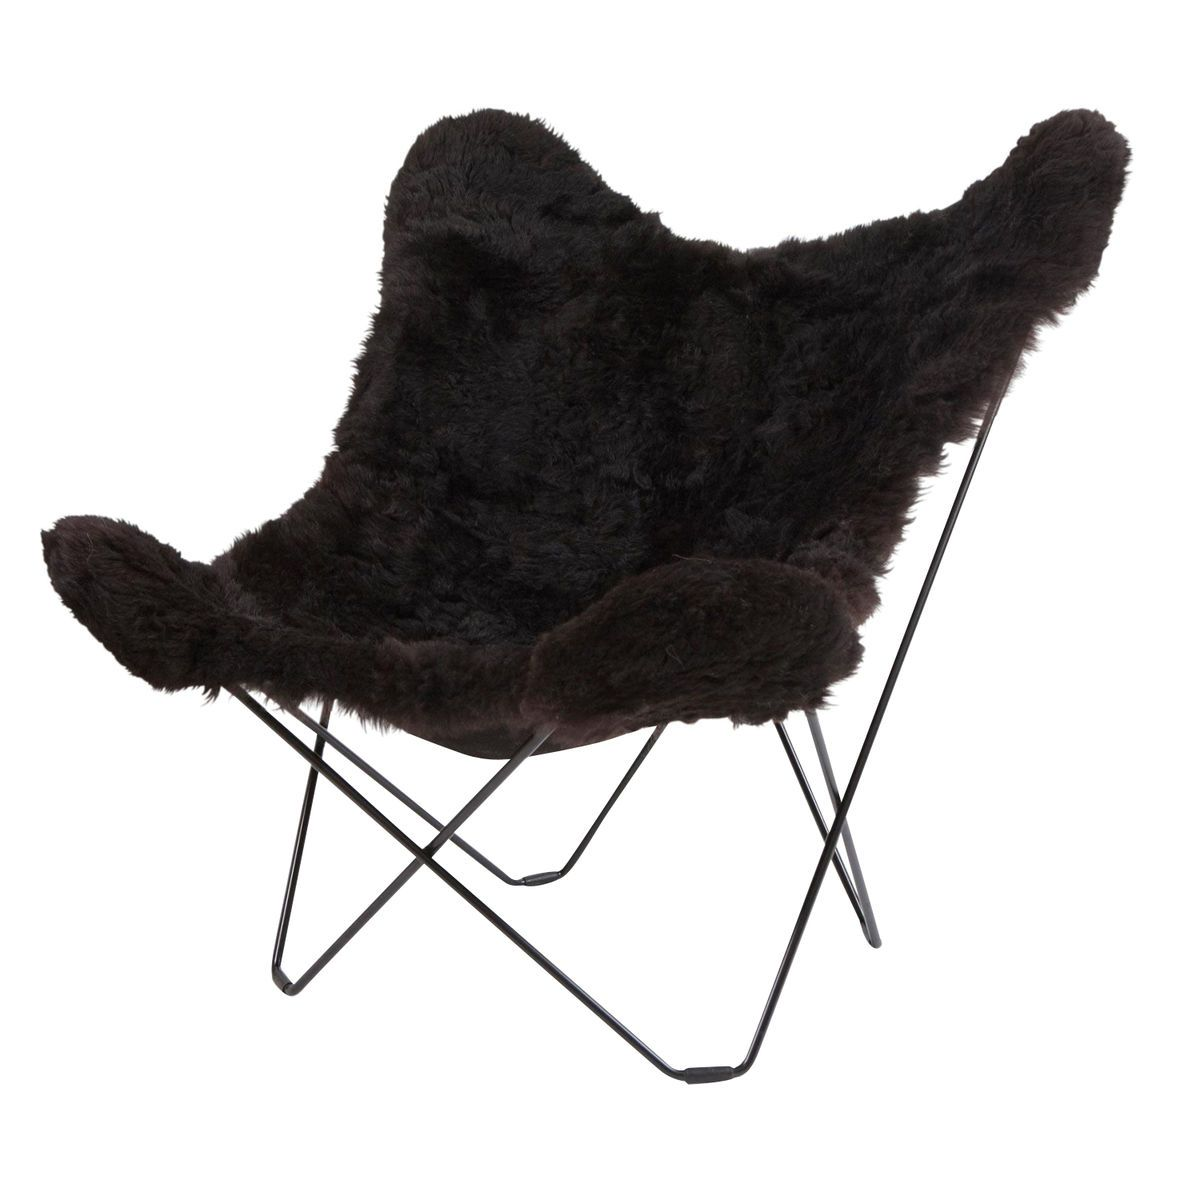 Butterfly chair black - Cuero Iceland Mariposa Butterfly Chair Black Icelandic Lambskin Frame Black